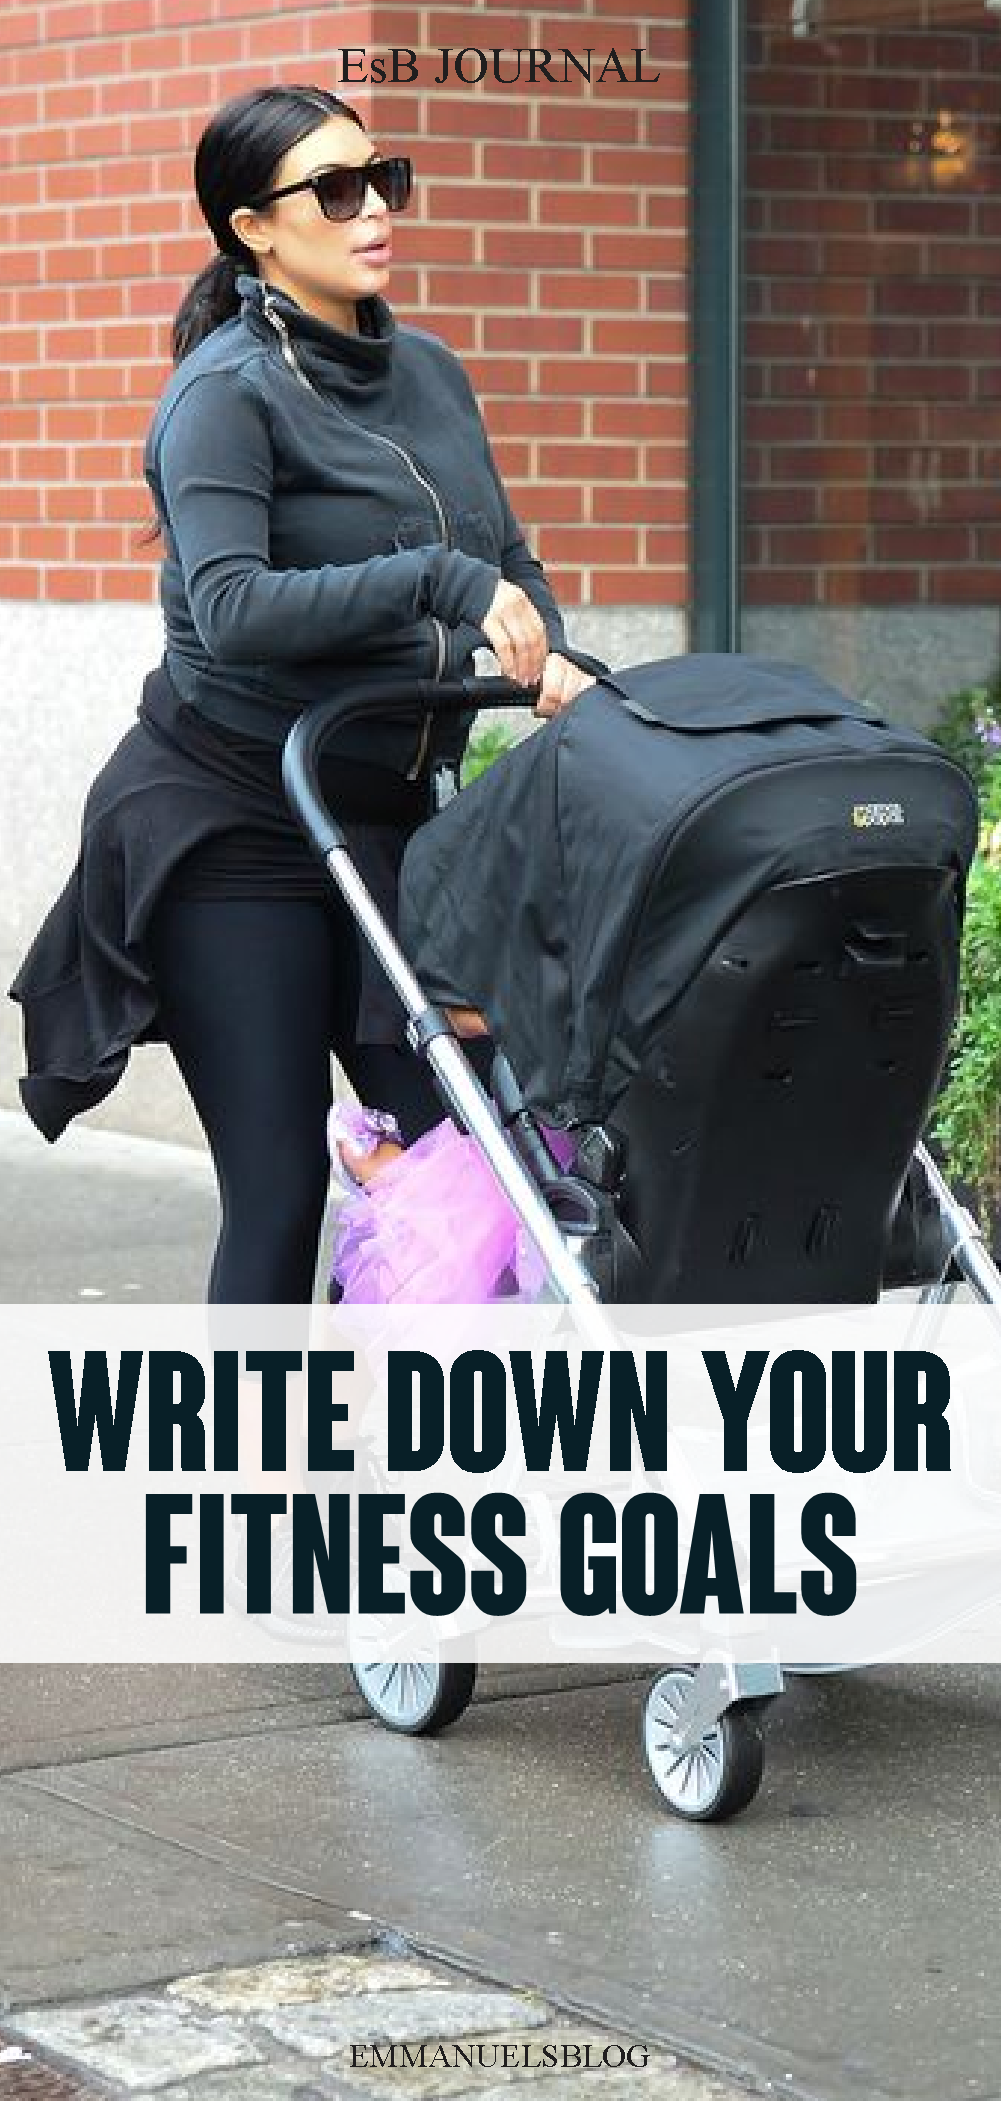 11 Kardashian-Approved Health Habits That Are Actually Pretty Legit